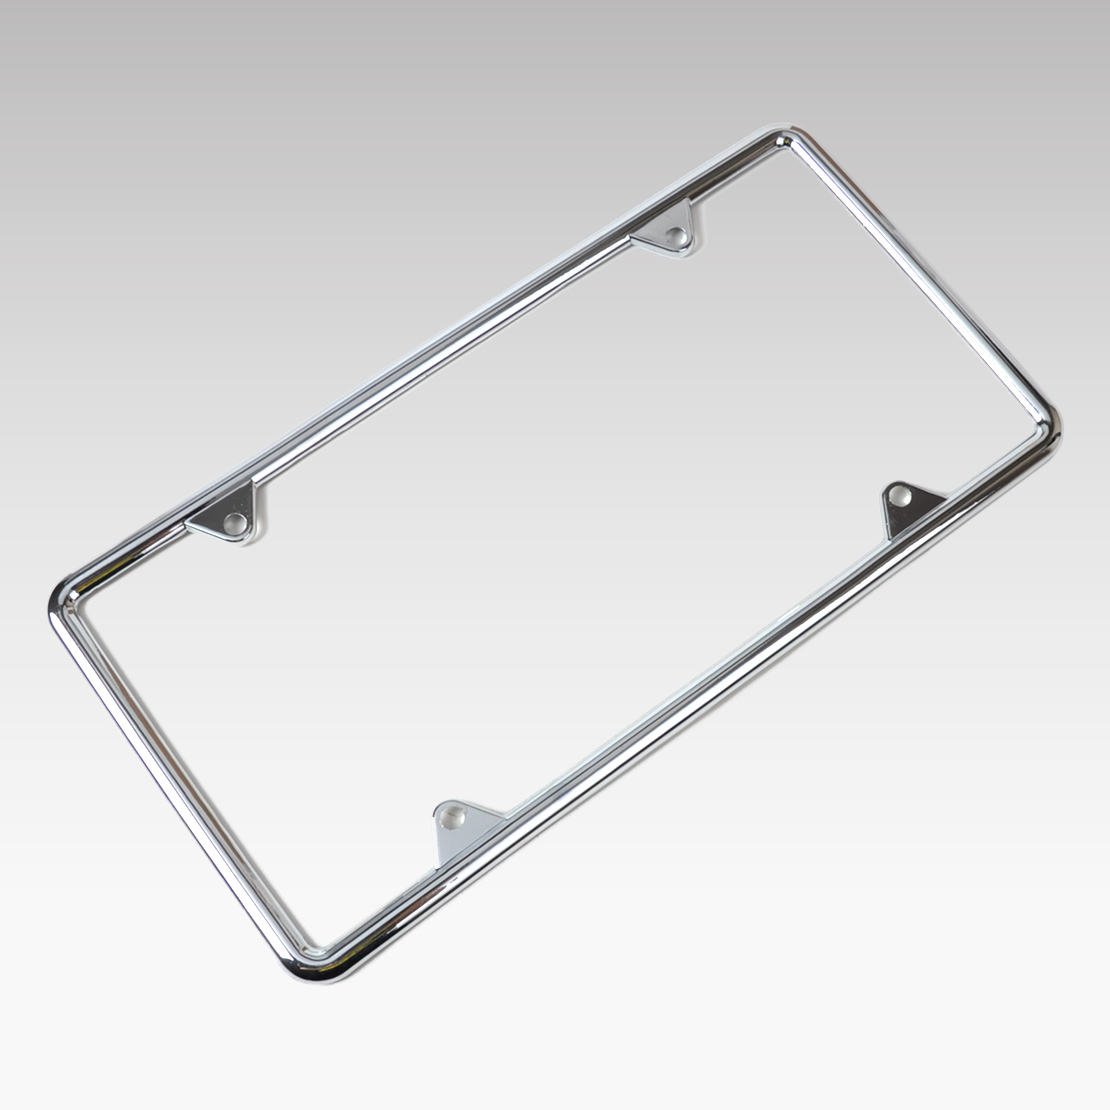 beler New 1Pc Zinc Alloy License Plate Frame Universal for Audi BMW VW Golf Toyota Corolla Nissan Qashqai Almost All Cars Trucks